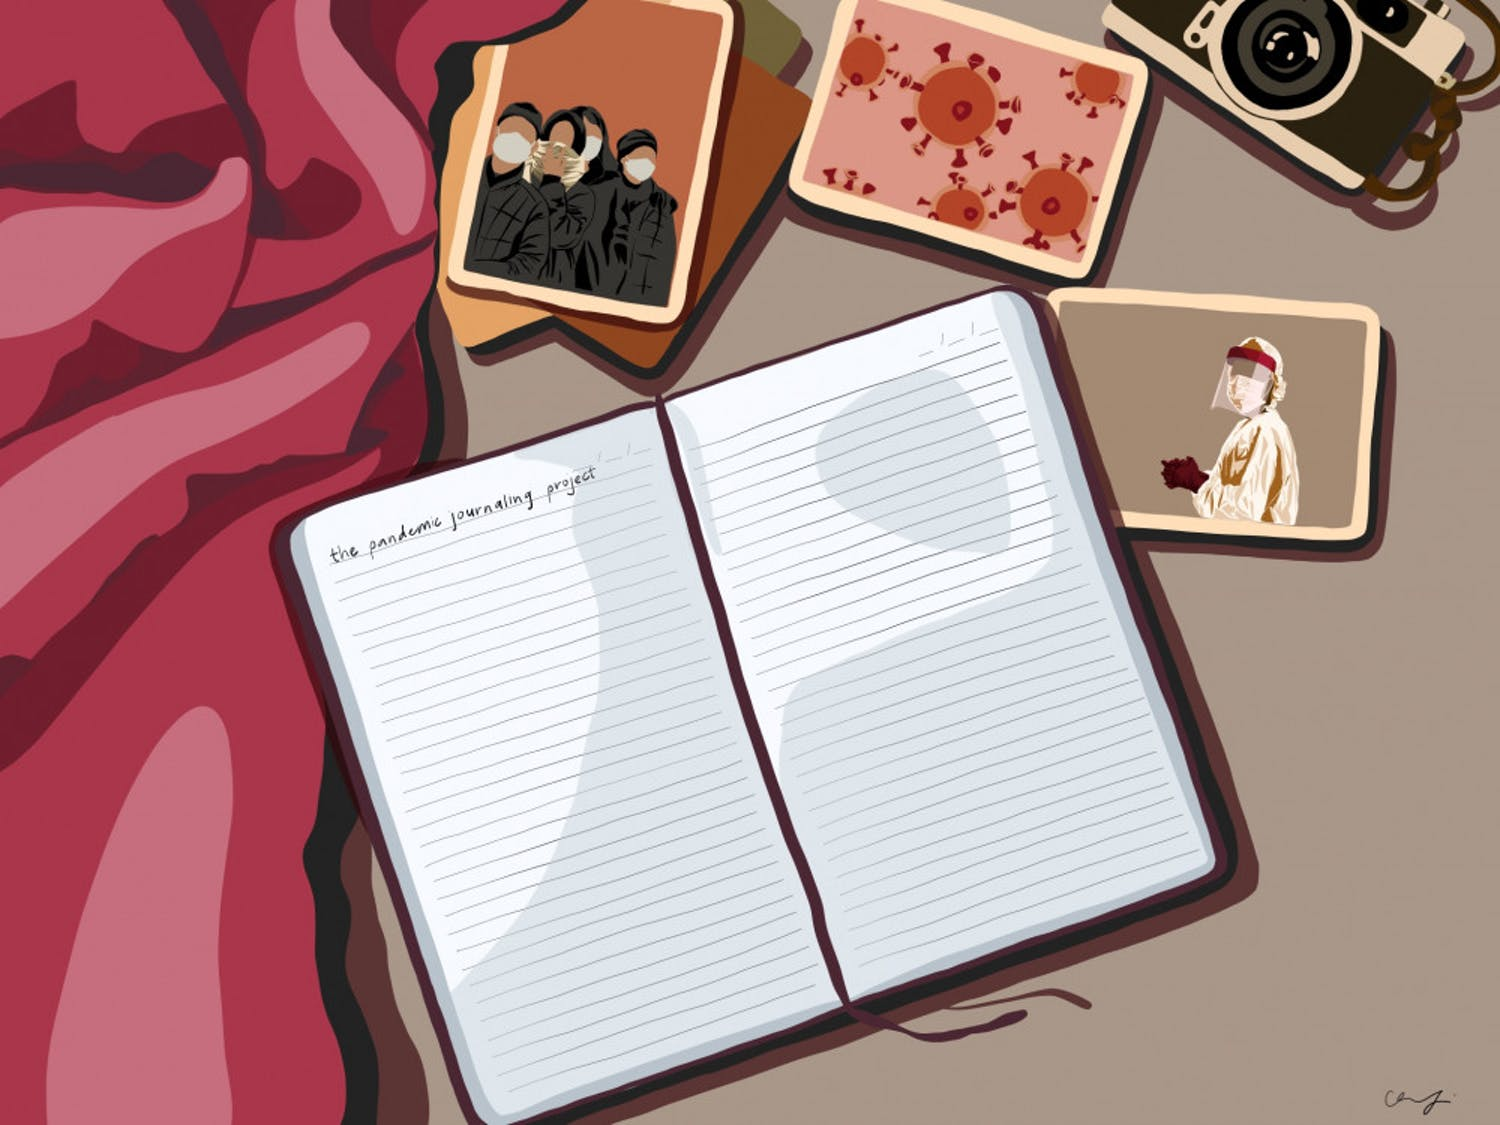 Pandemic_journaling_project_claire_lin